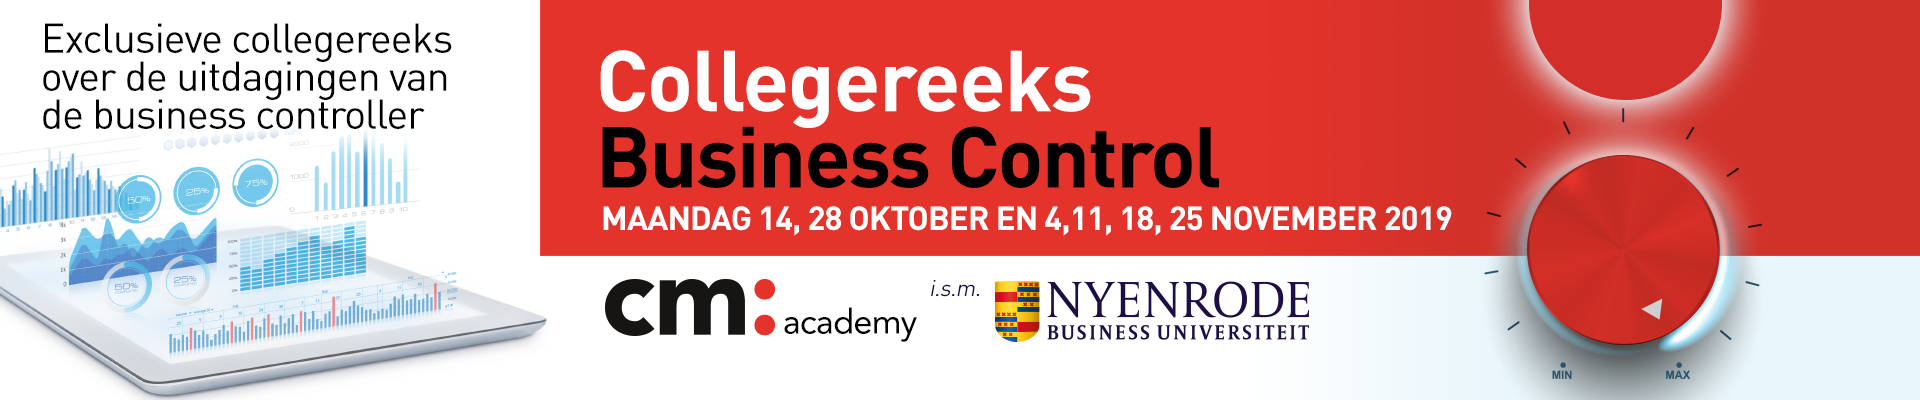 Collegereeks Business Control najaar 2019